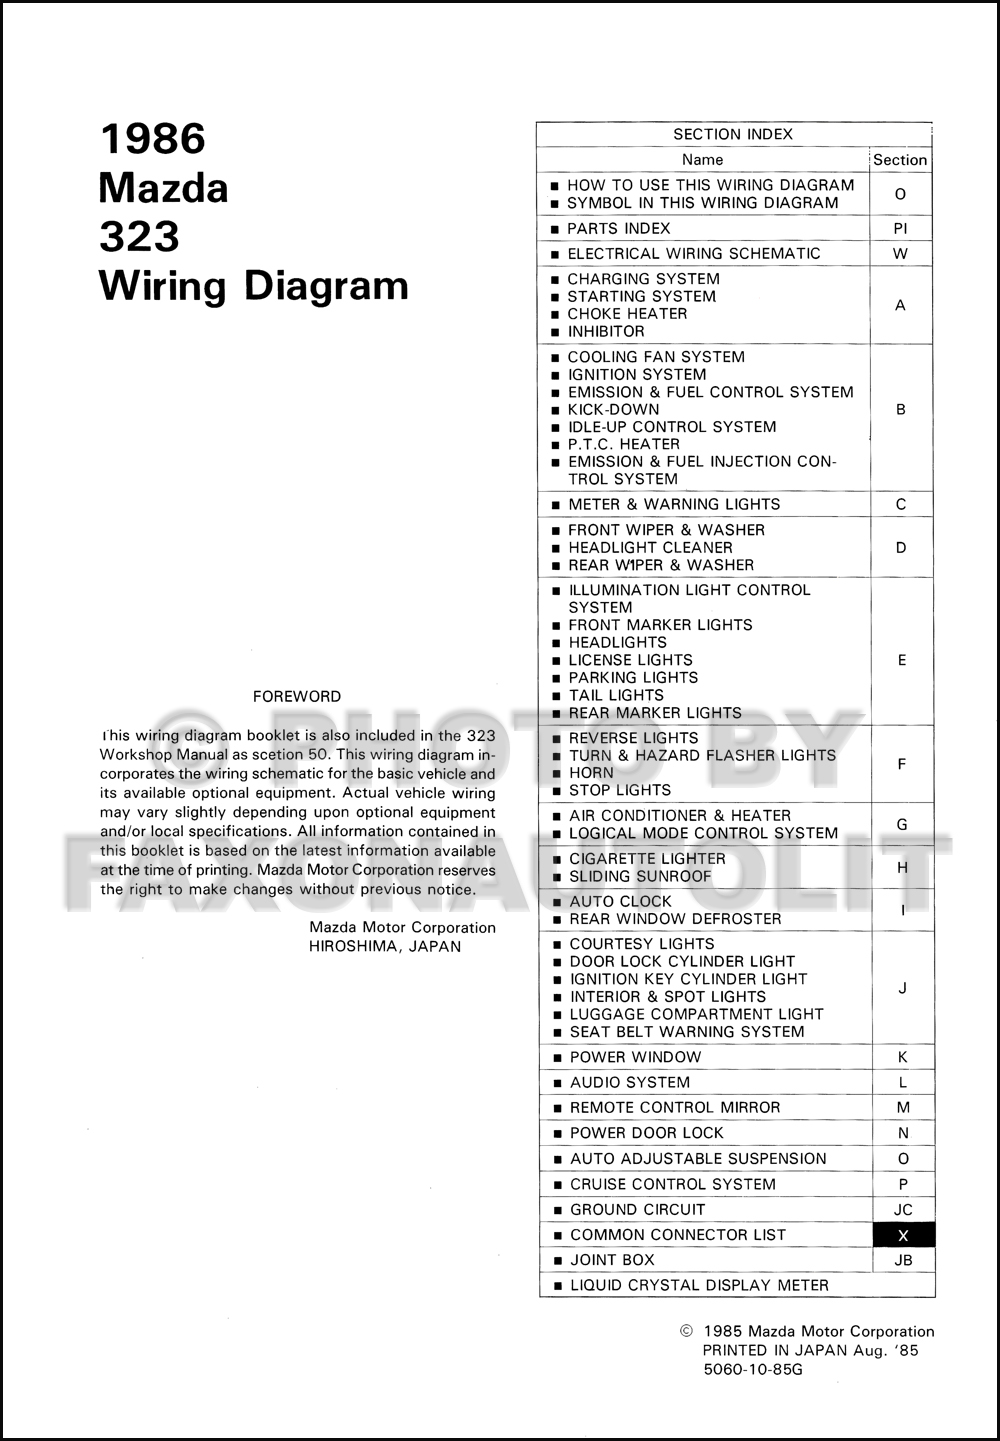 1986 Mazda 323 Wiring Diagram Free For You 1999 626 Manual Original Rh Faxonautoliterature Com Diagrams Automotive Relay